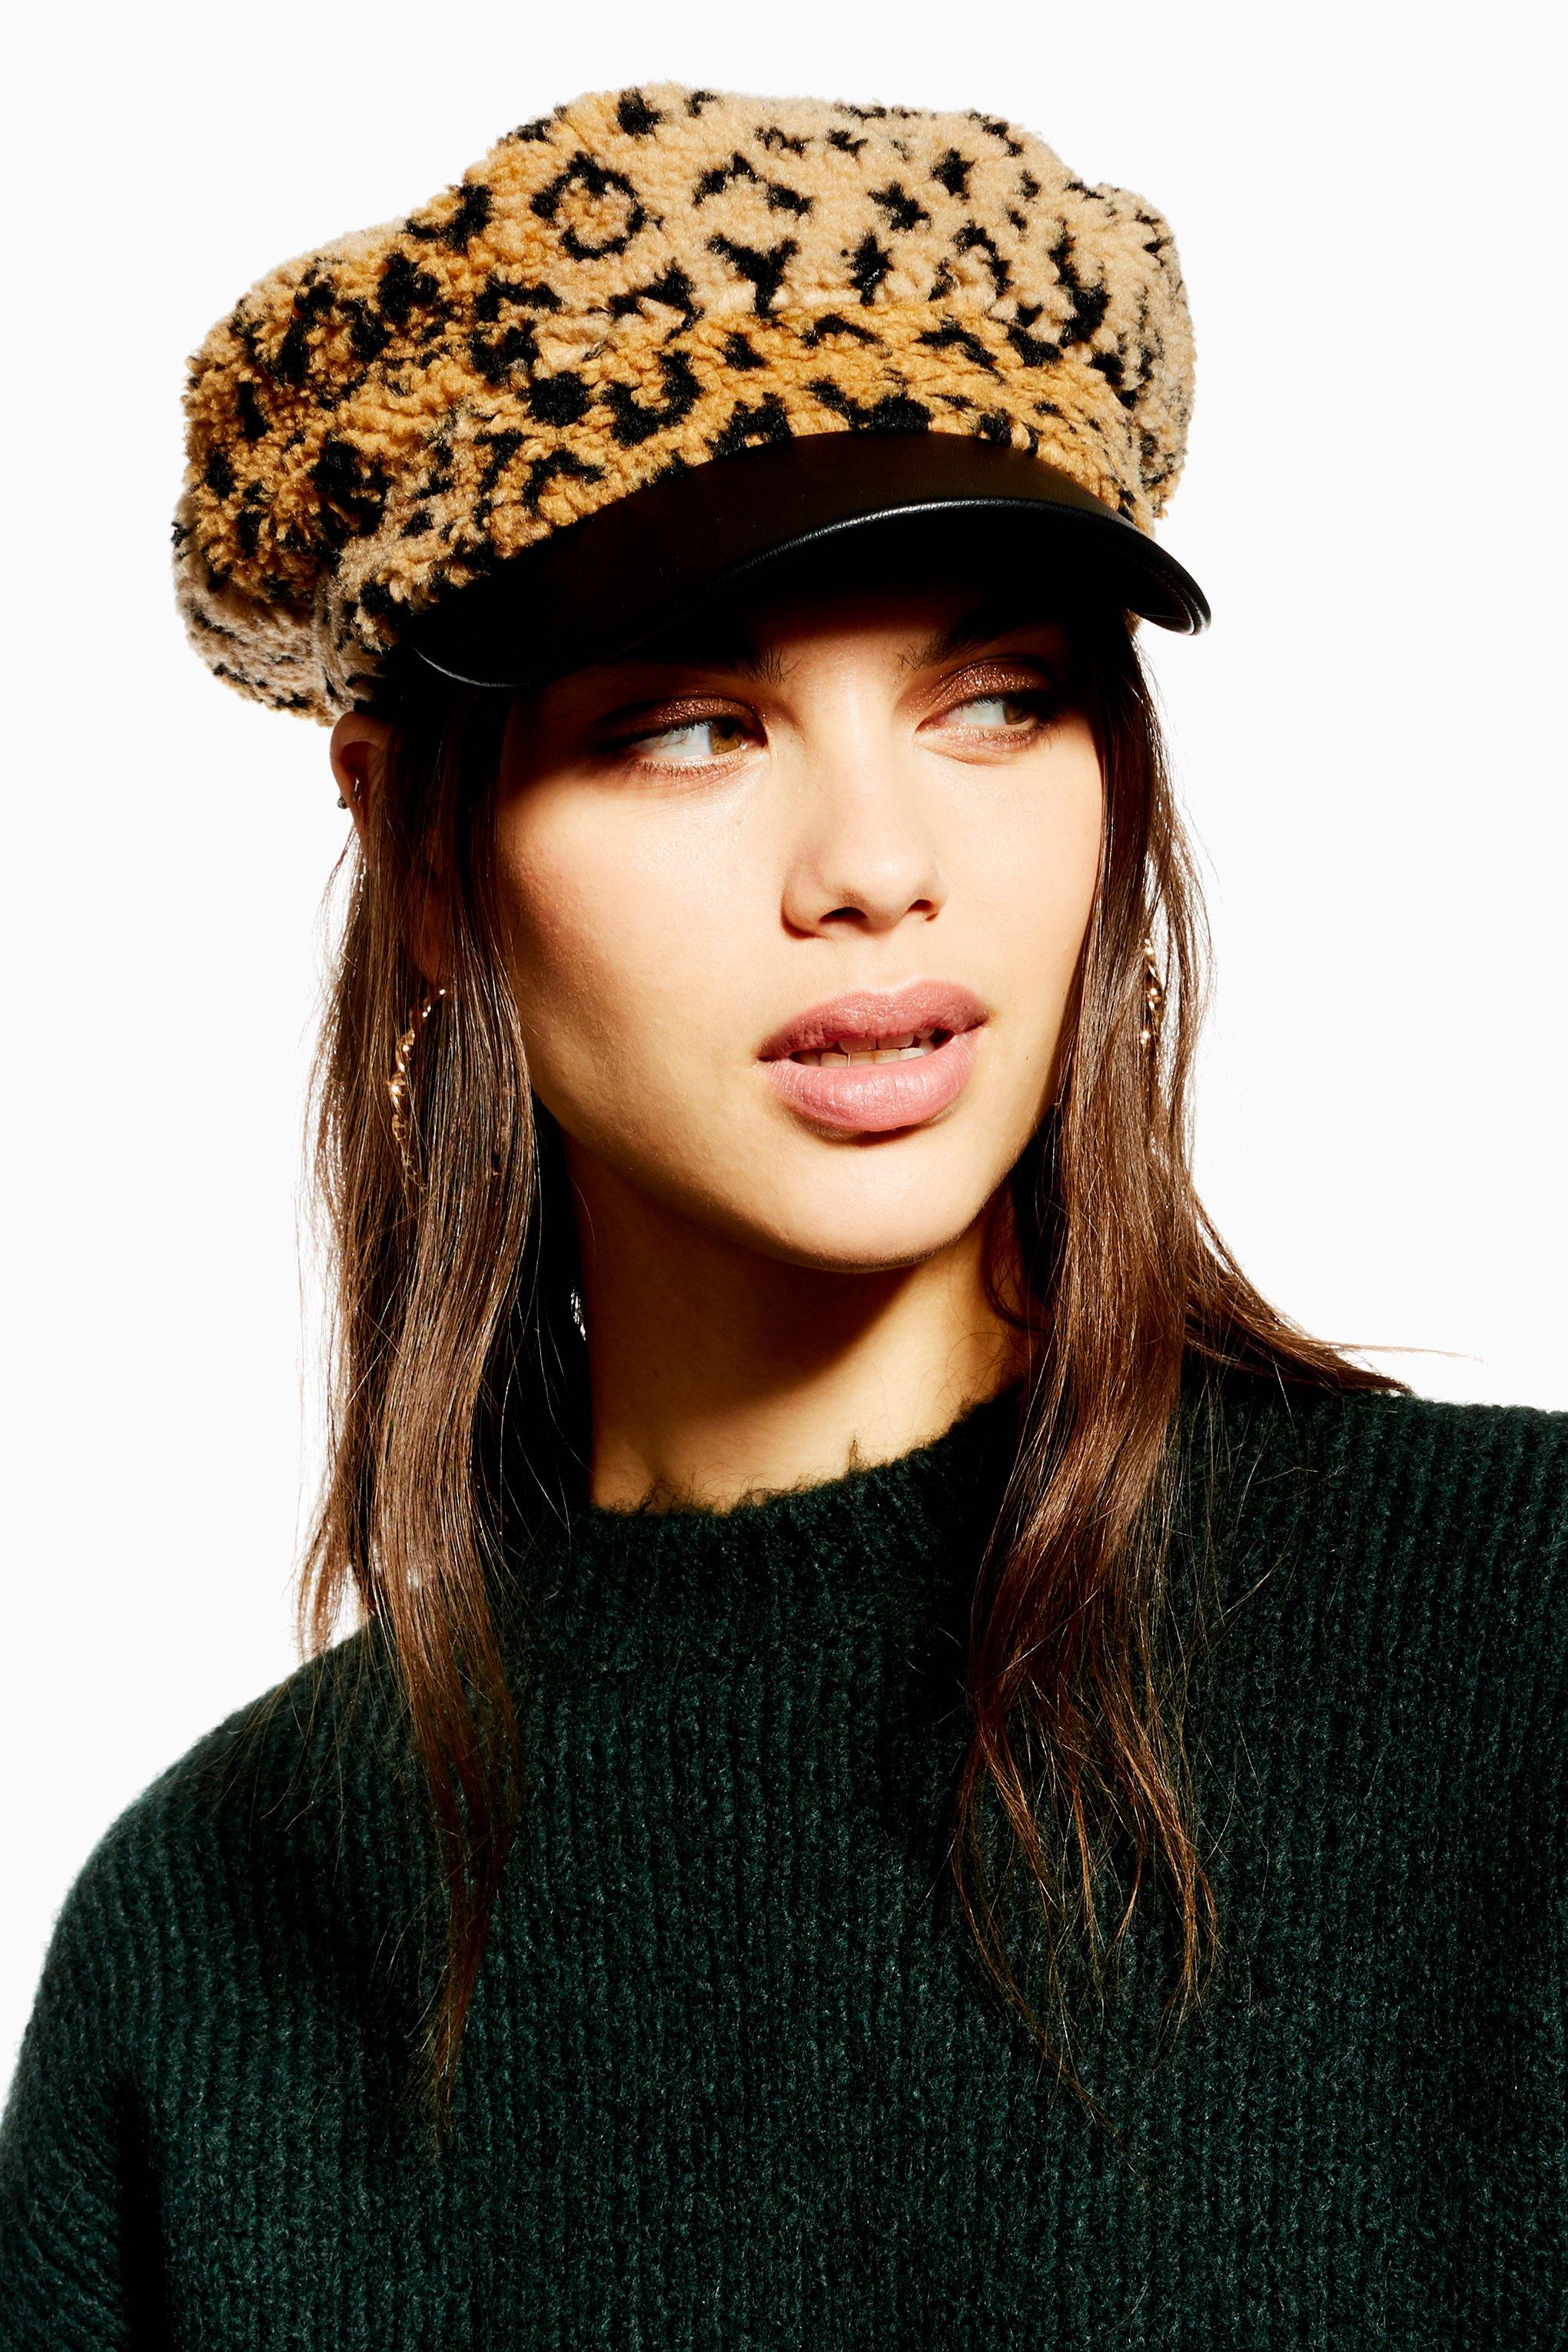 Lyst - TOPSHOP Leopard Print Borg Baker Boy Hat in Natural 0c1be110cc03